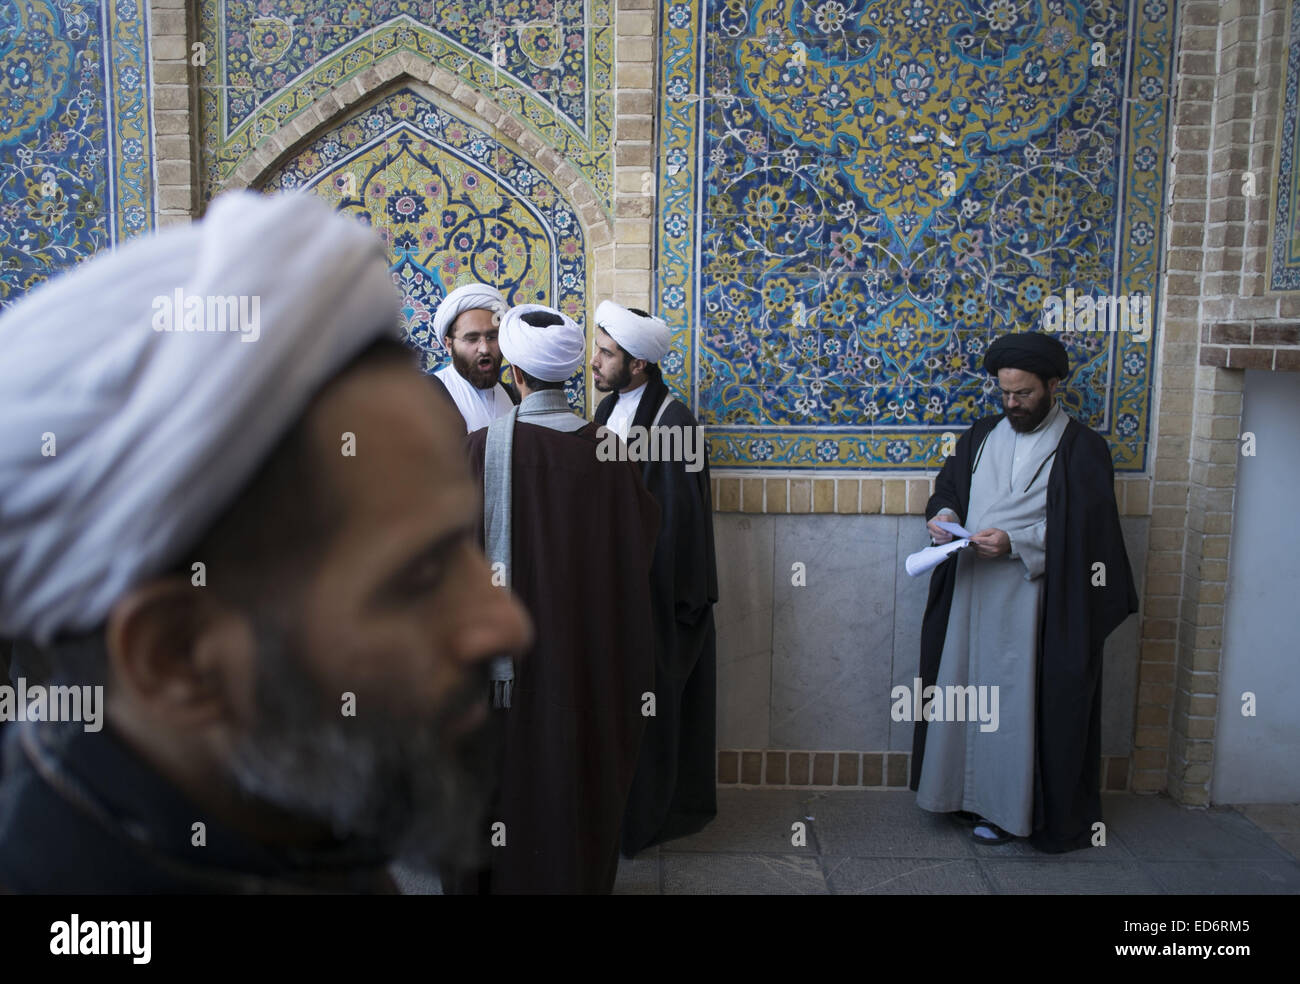 Qom, Iran. 29th Dec, 2014. Iranian clerics talk with each other during a rally to mark December 30, 2009 demonstration - Stock Image